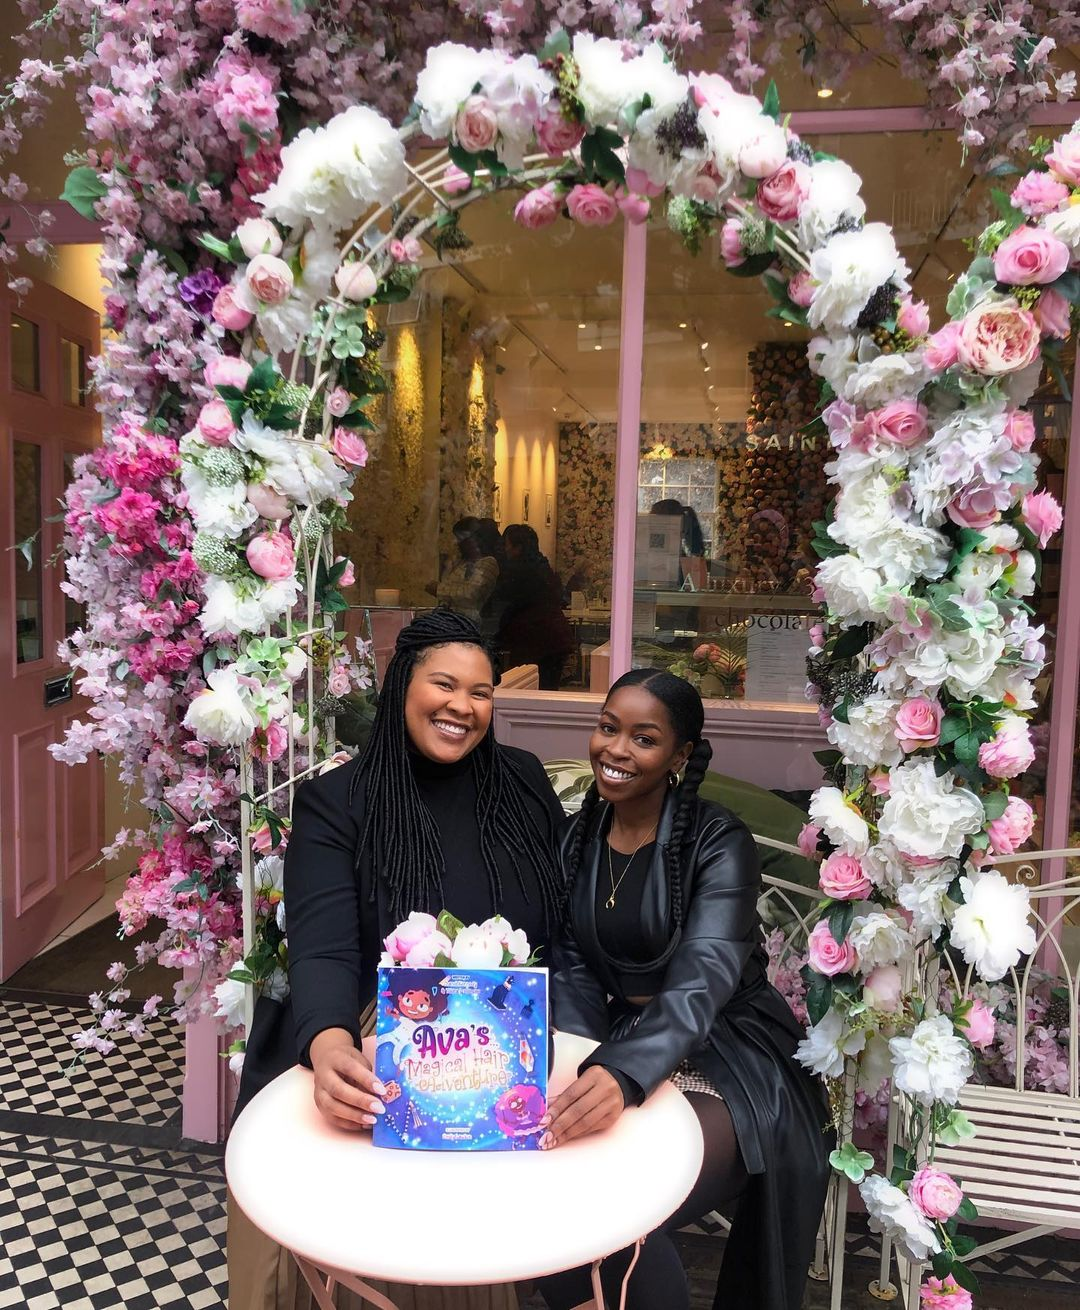 Authors Chanel and Telena with the book